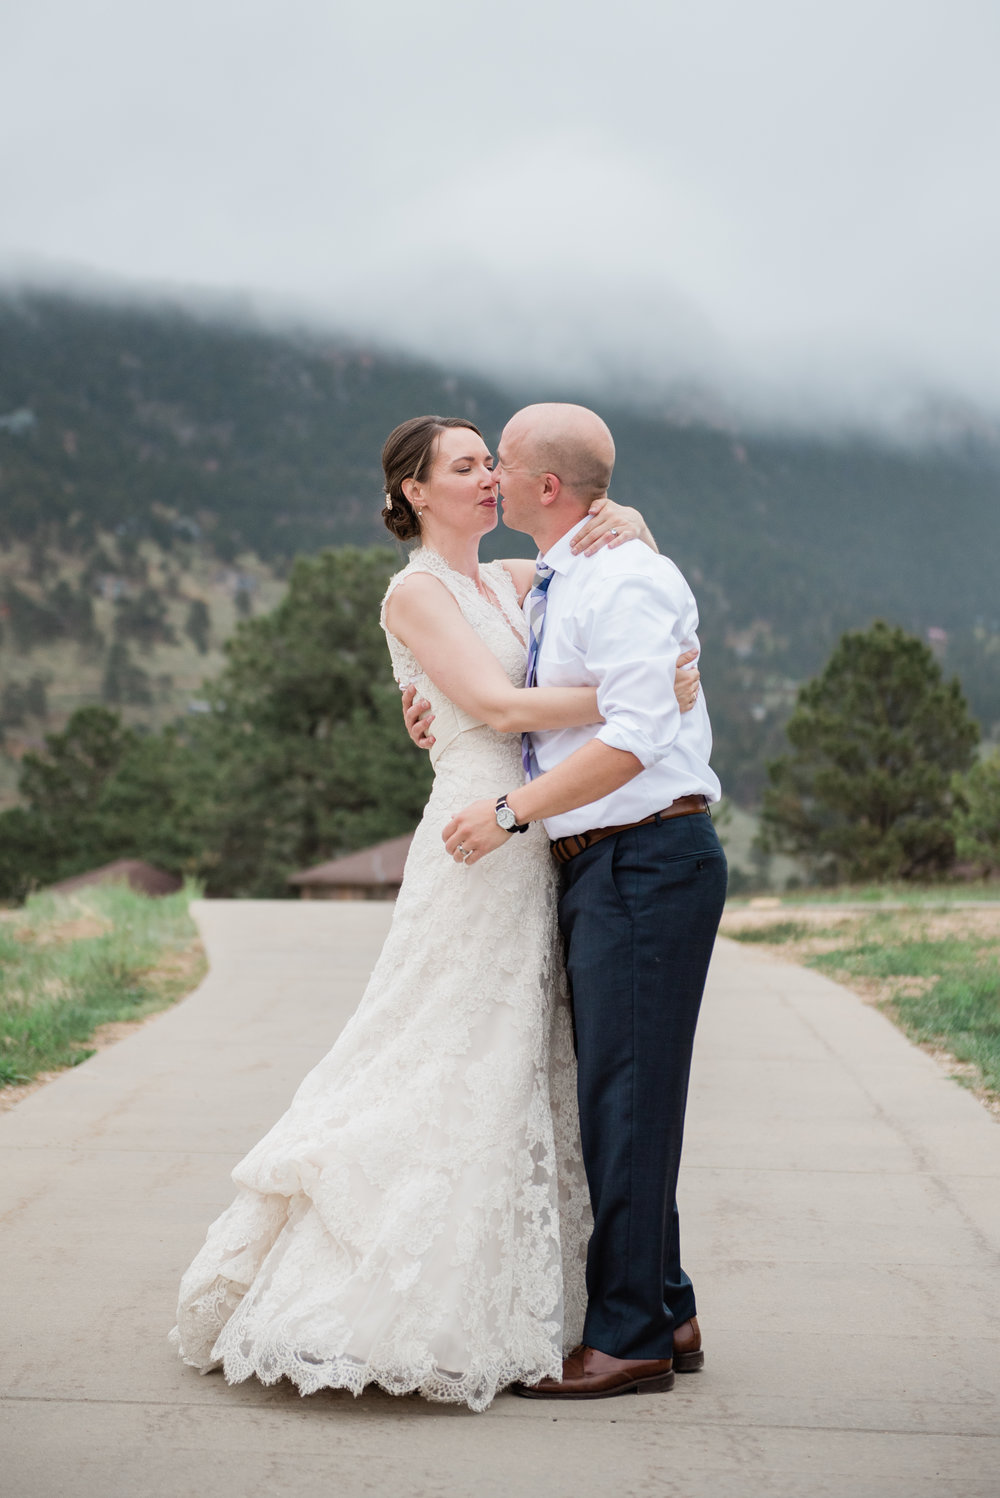 AshleighMillerWedding-EmilyJoe-Wedding-Colorado-EstesPark-3685.jpg